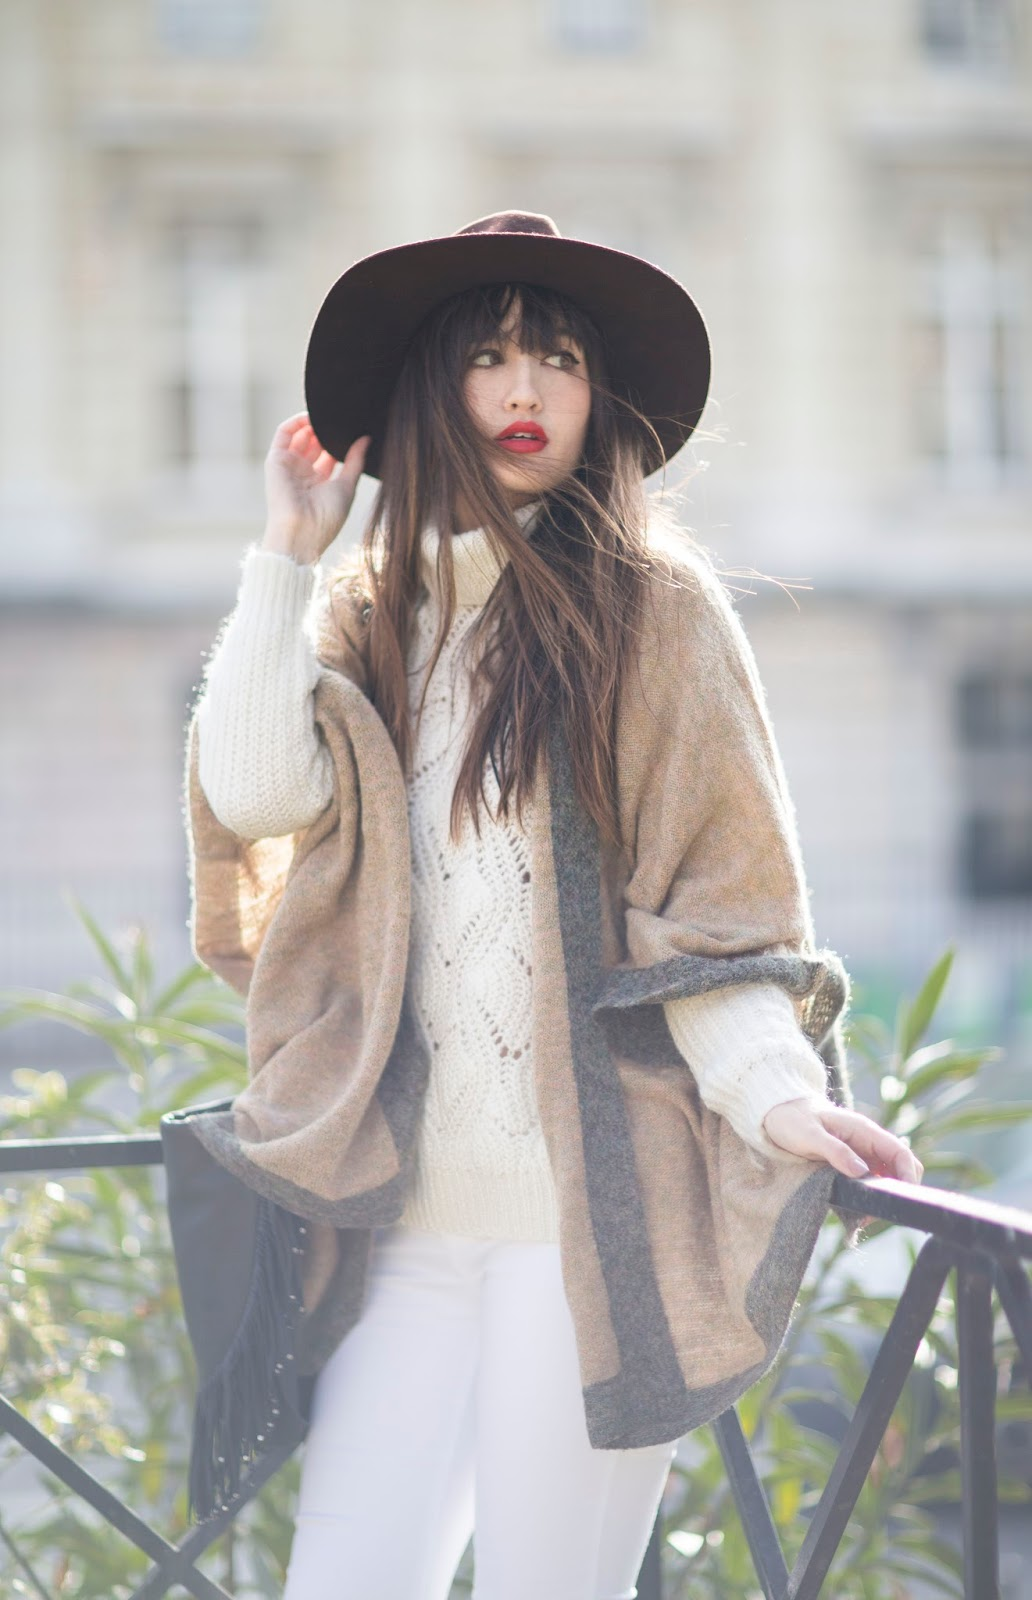 meet me in paree, blogger, fashion, style, look, paris, street style, mode, parisian look